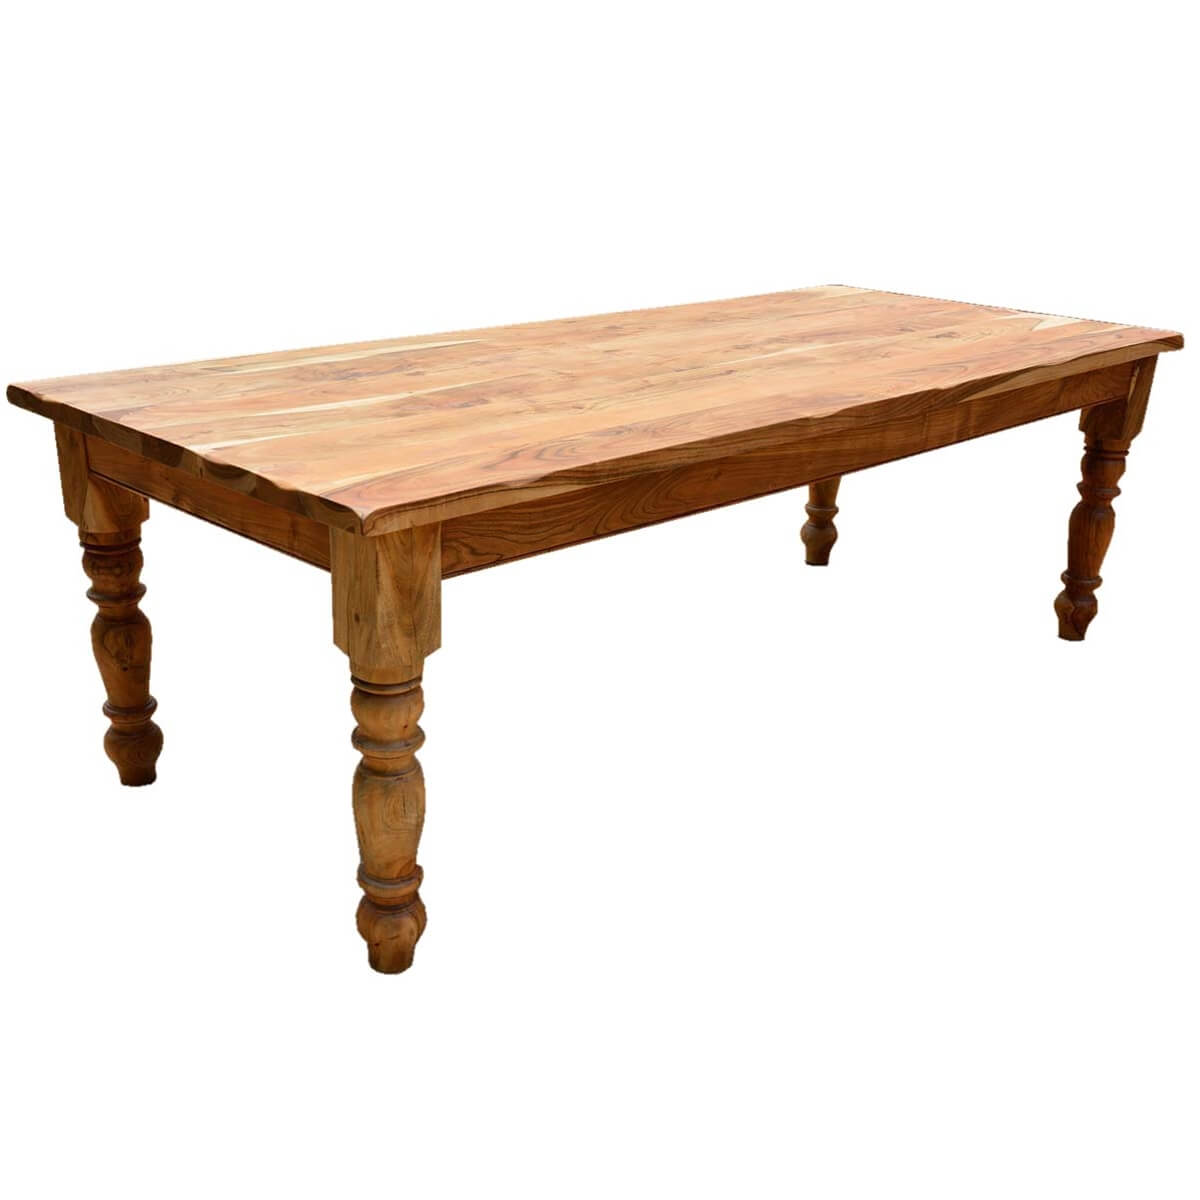 Solid wood farmhouse dining table solid wood vintage for Solid wood dining table